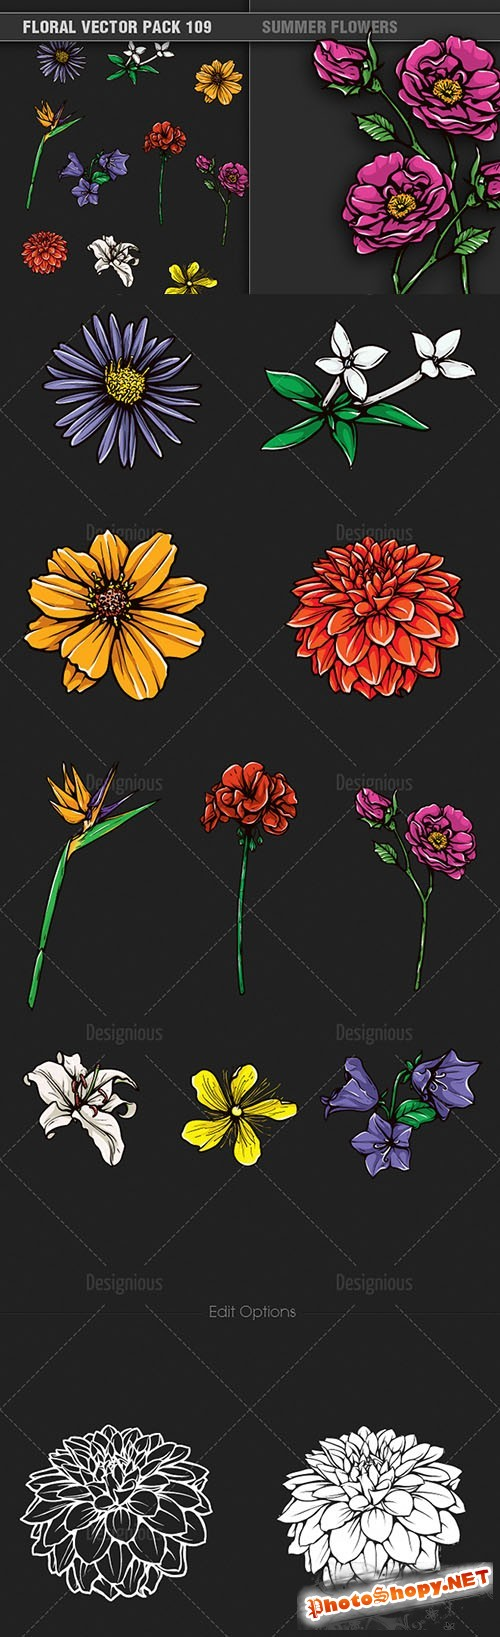 Summer Flowers Vector Illustrations Pack 109